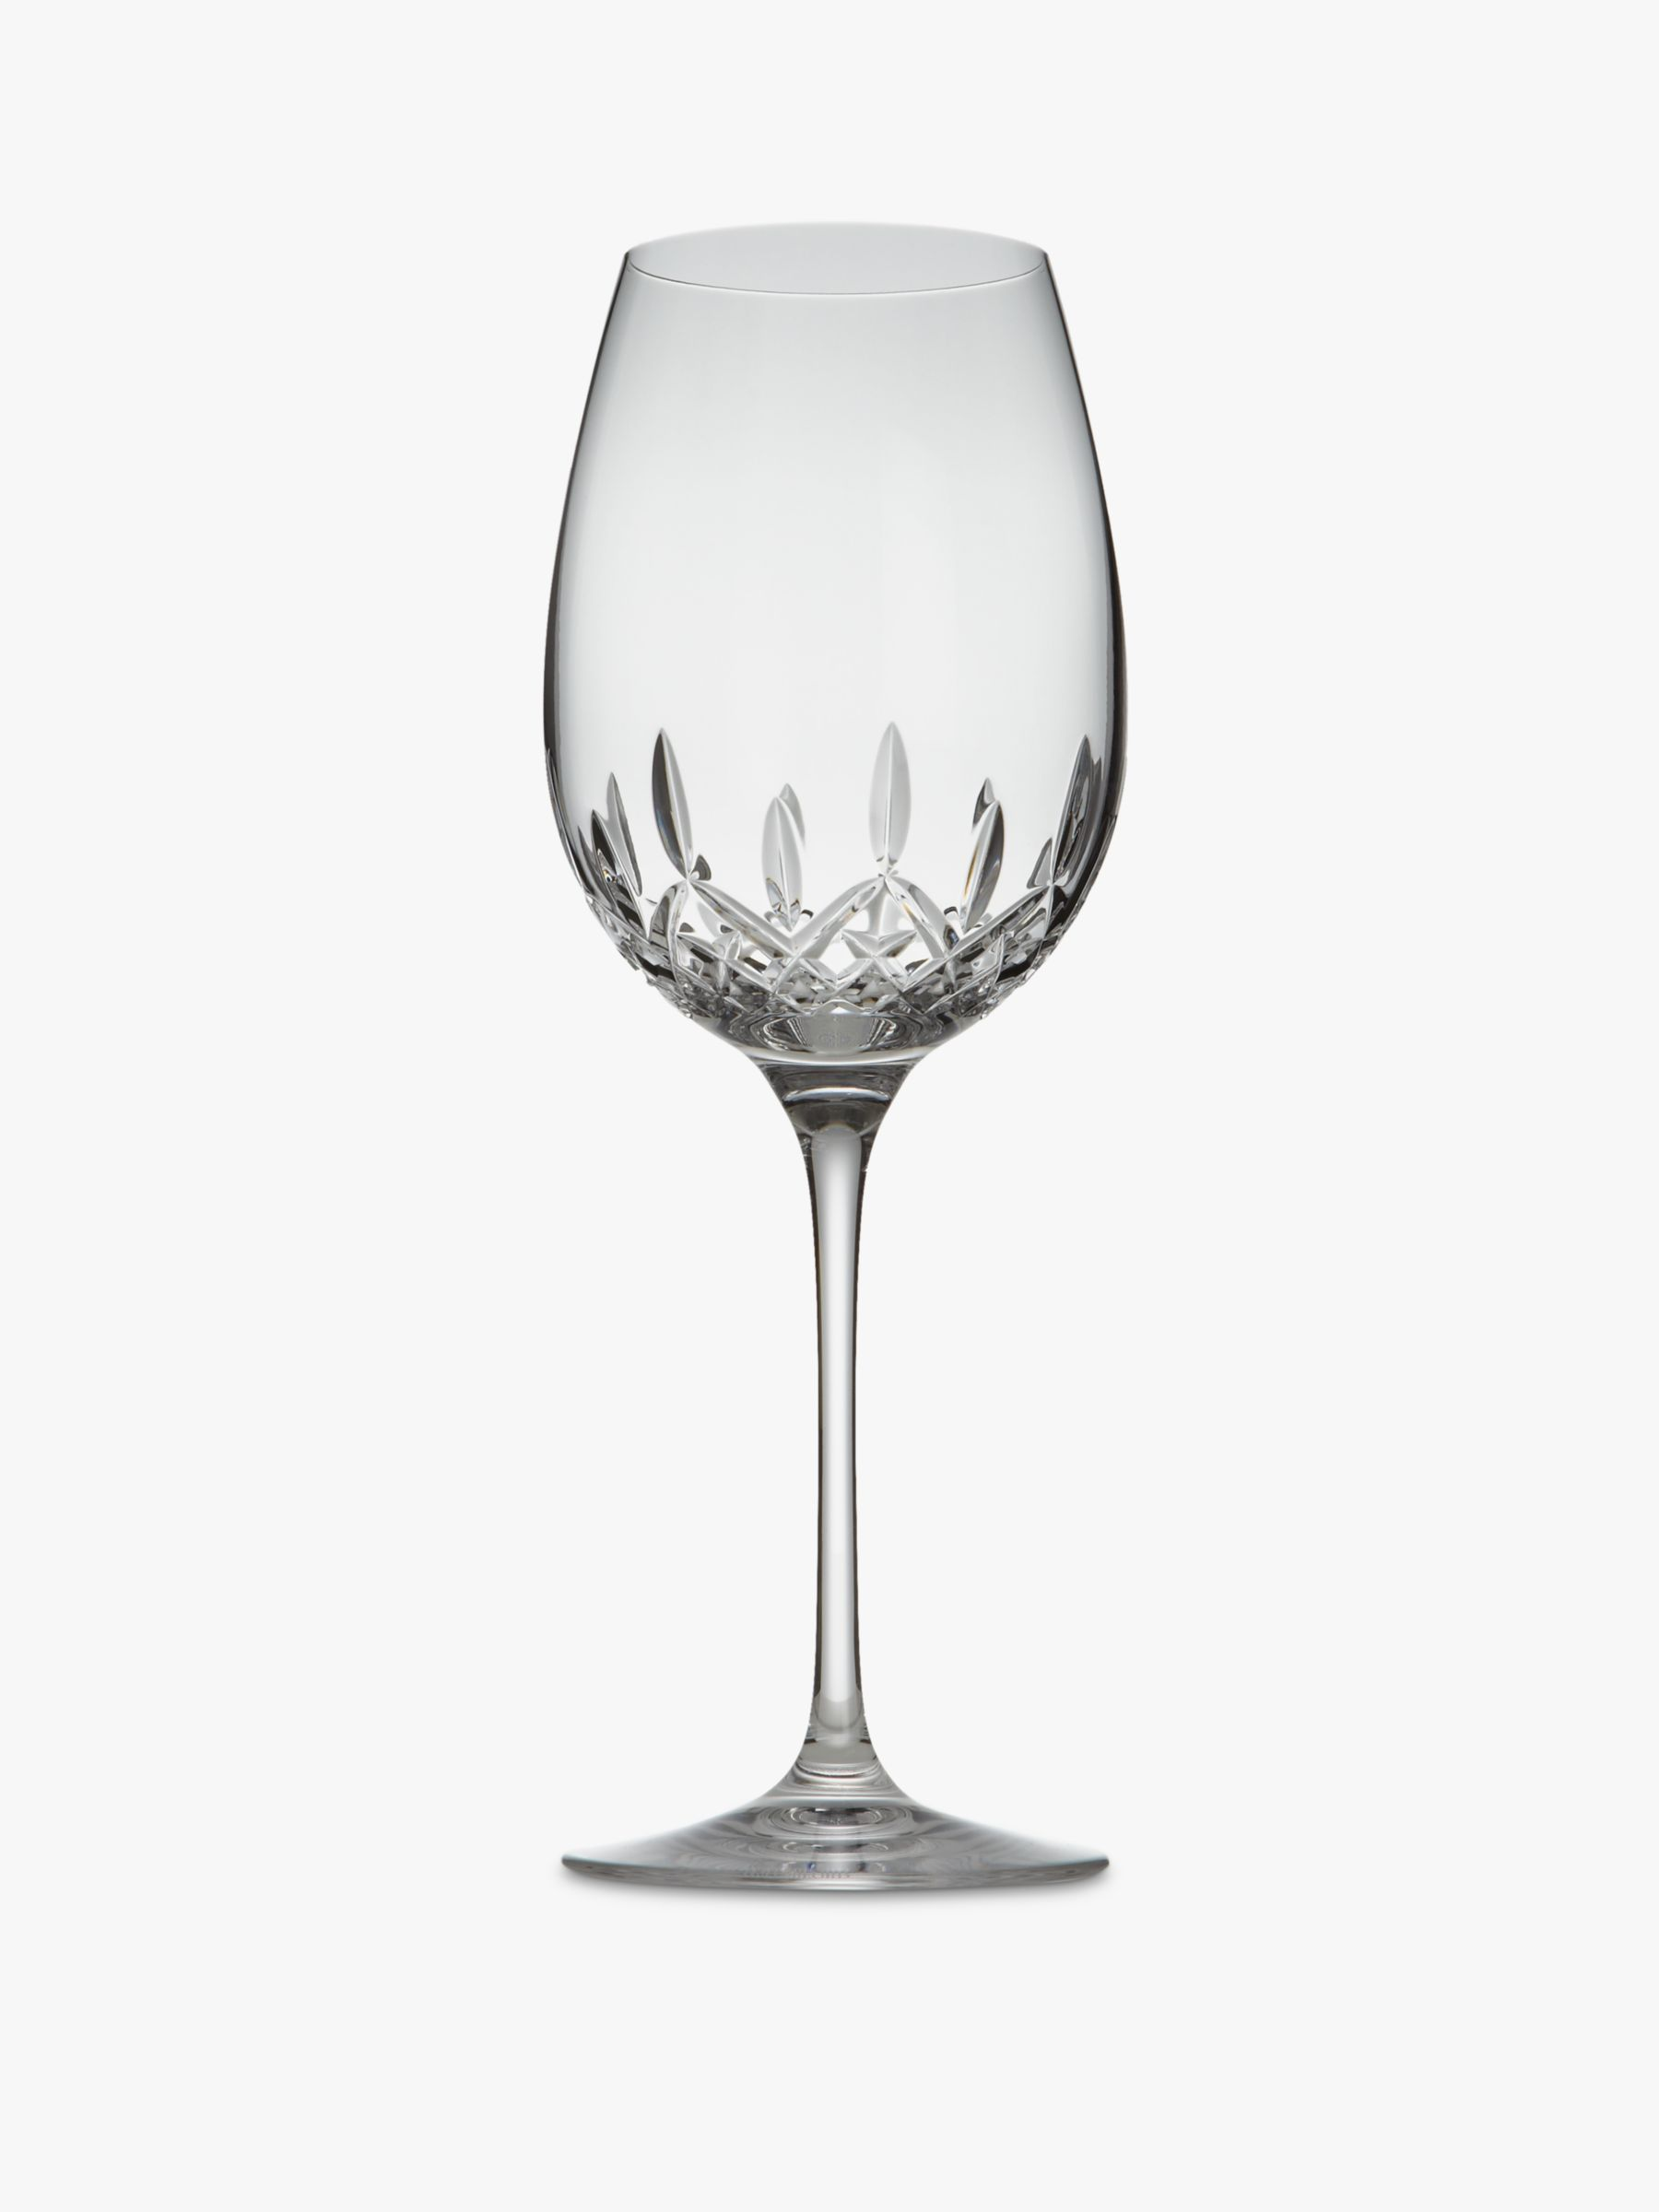 Waterford Waterford Crystal Lismore Essence Cut Lead Crystal Goblets, Box of 2, Clear